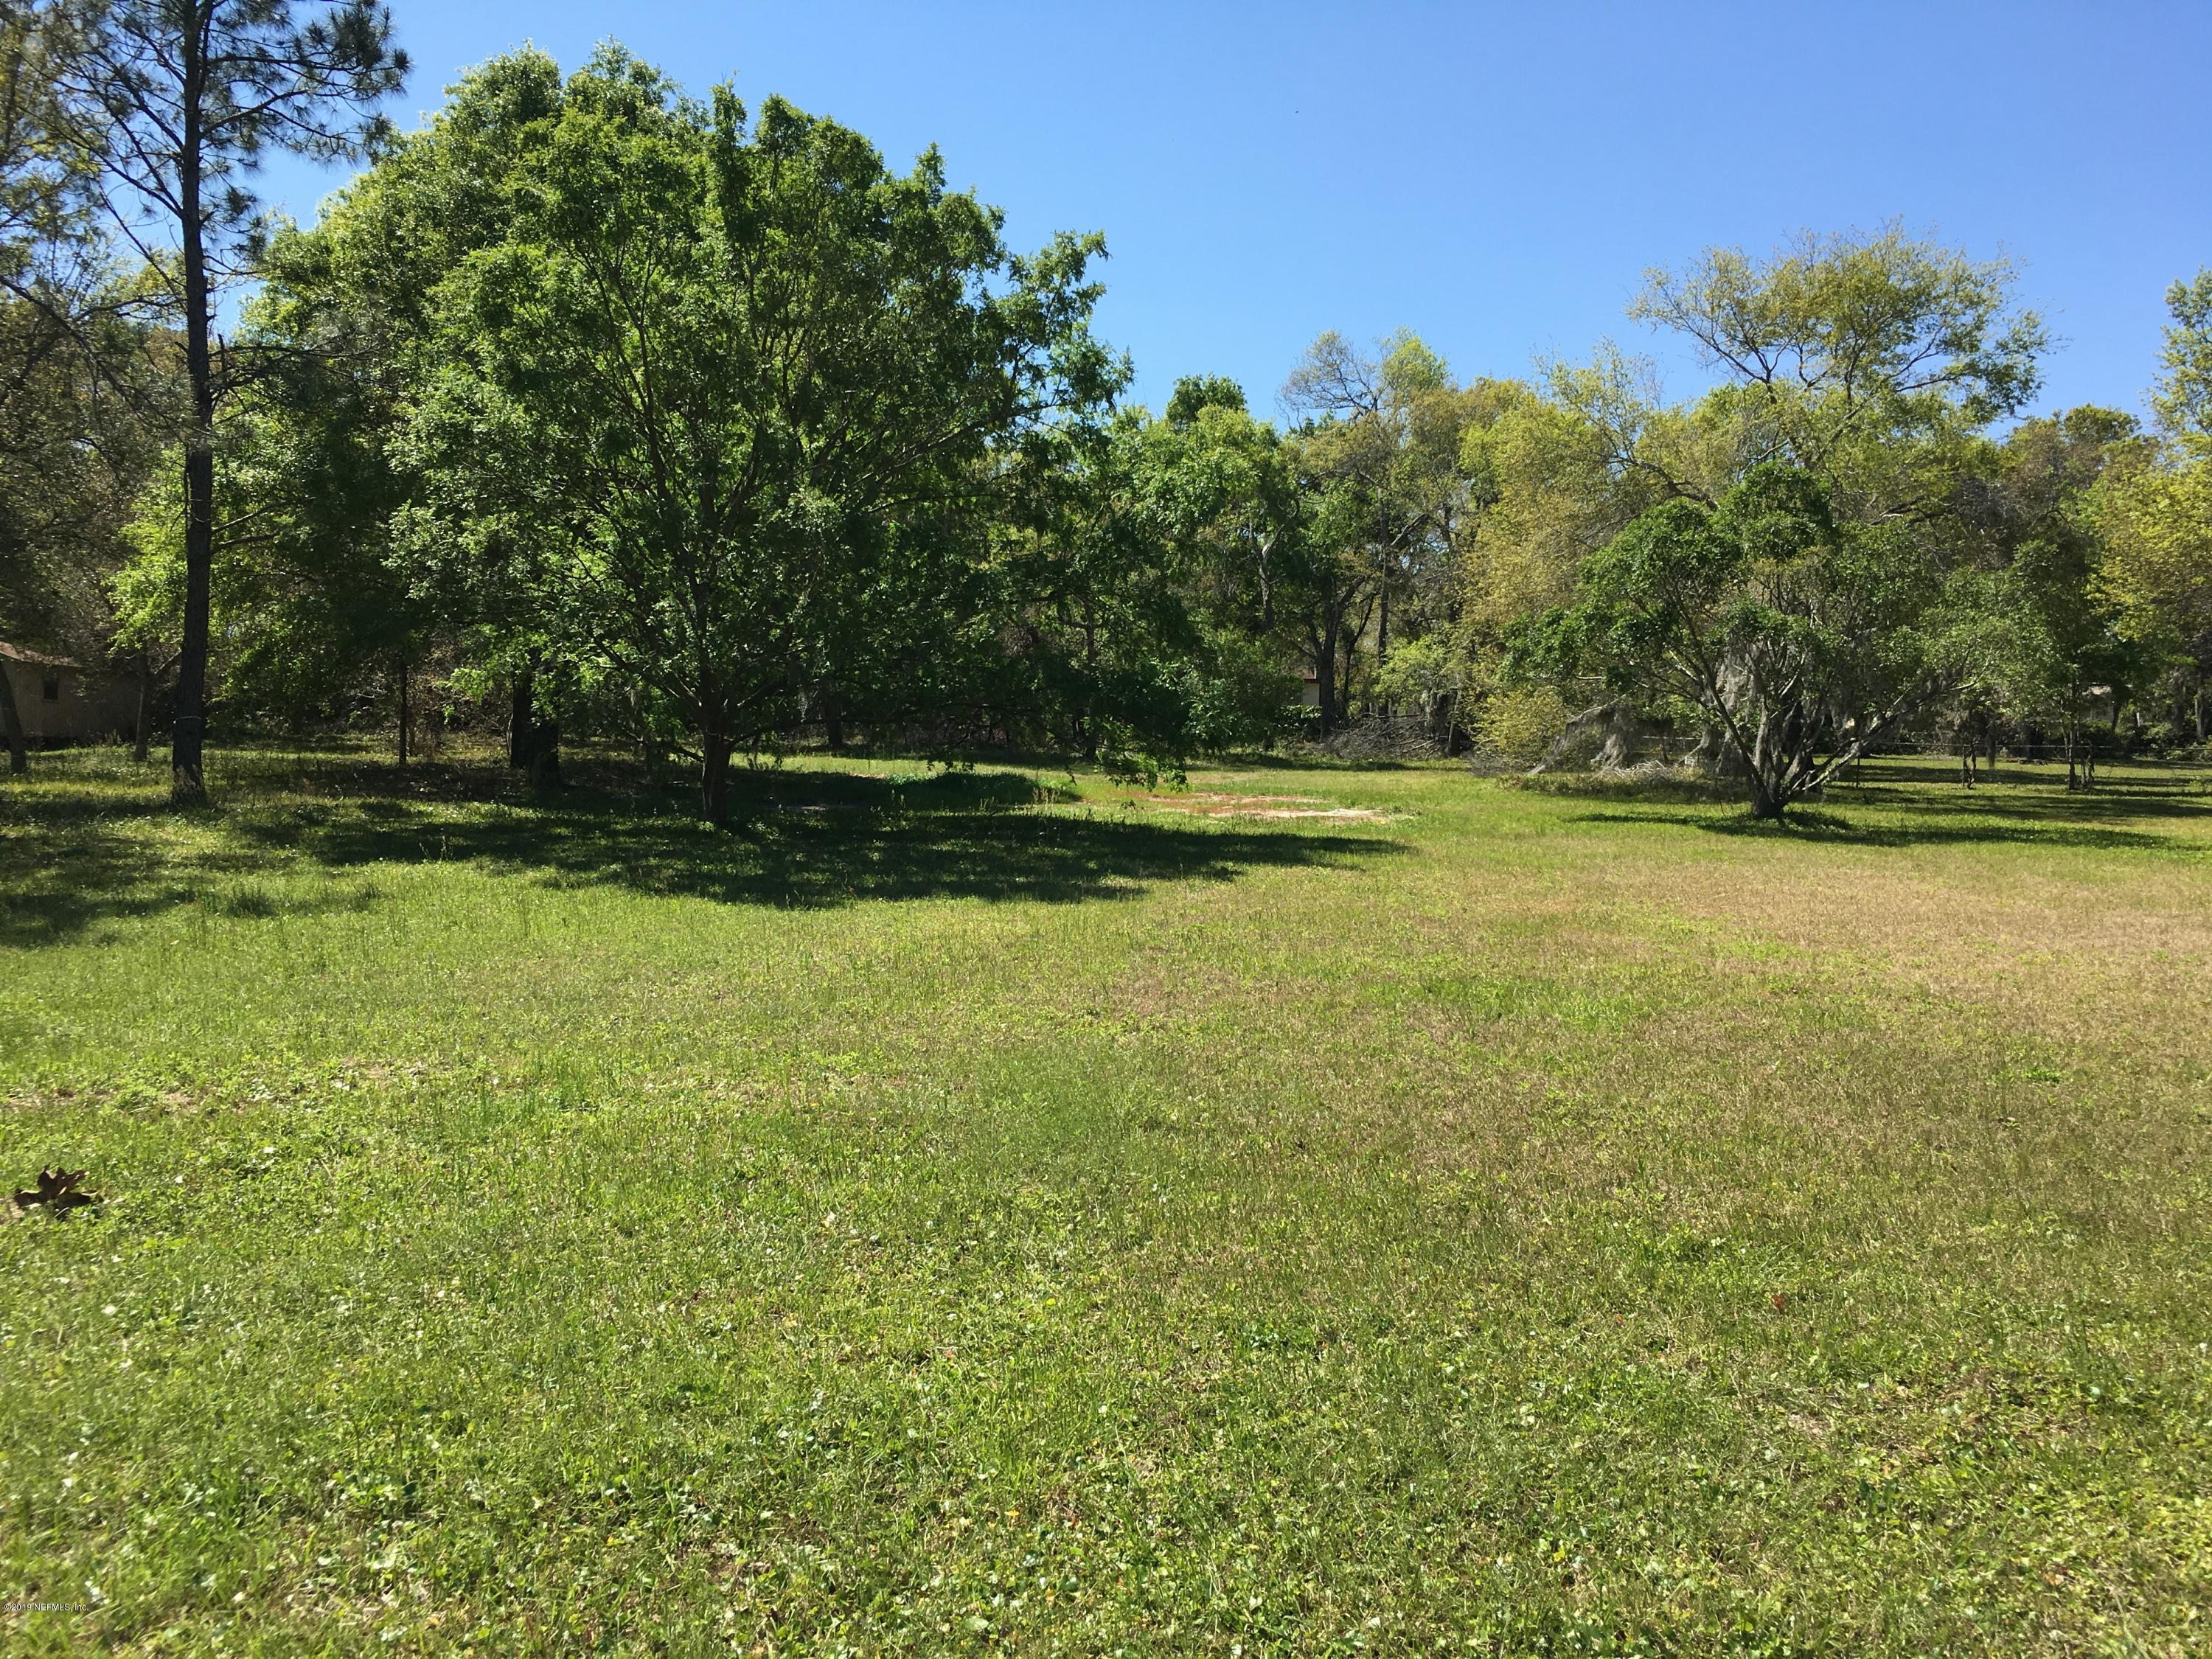 0 VAILL POINT, ST AUGUSTINE SHORES, FLORIDA 32086, ,Vacant land,For sale,VAILL POINT,994807